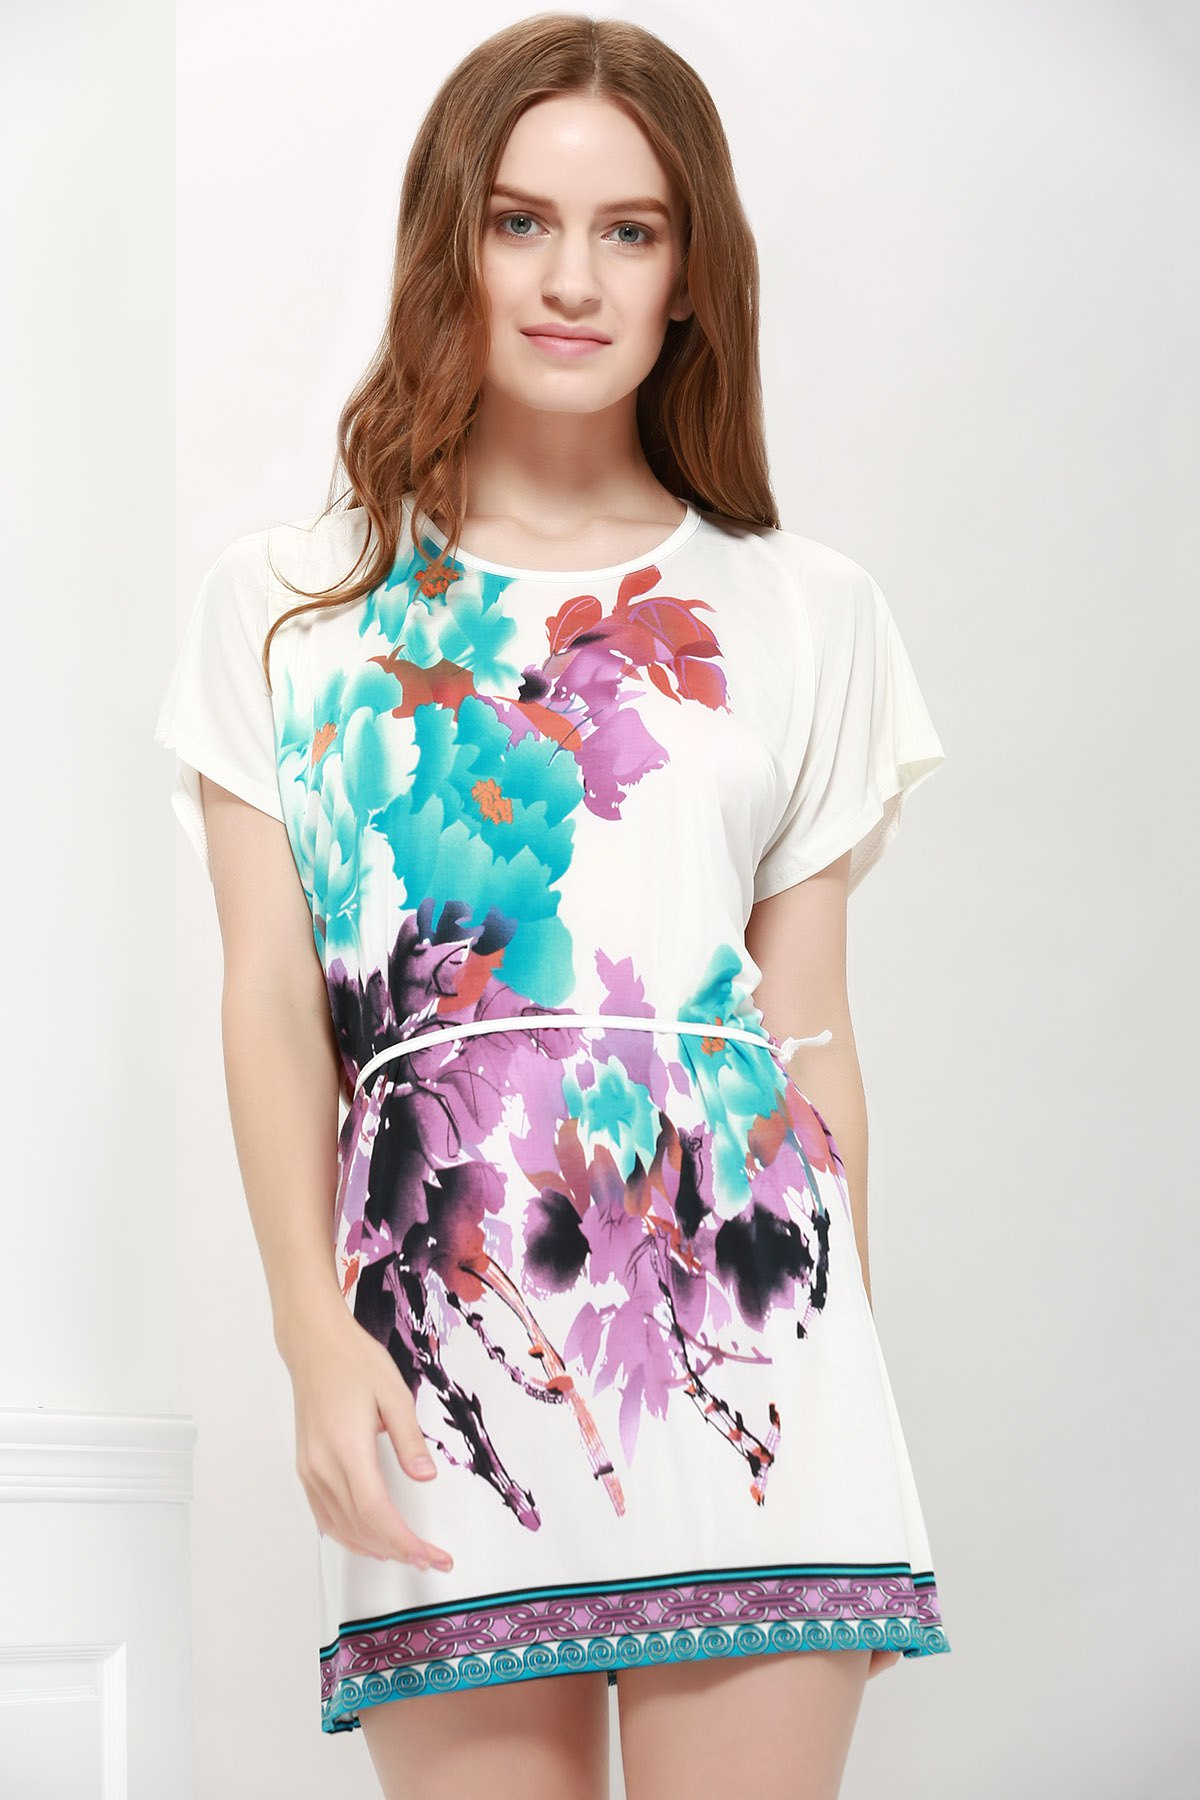 Bat-Wing Sleeve Floral Print Lace-Up Gorgeous Scoop Neck Women 's Blouse семена огурец мурашка f1 10 шт